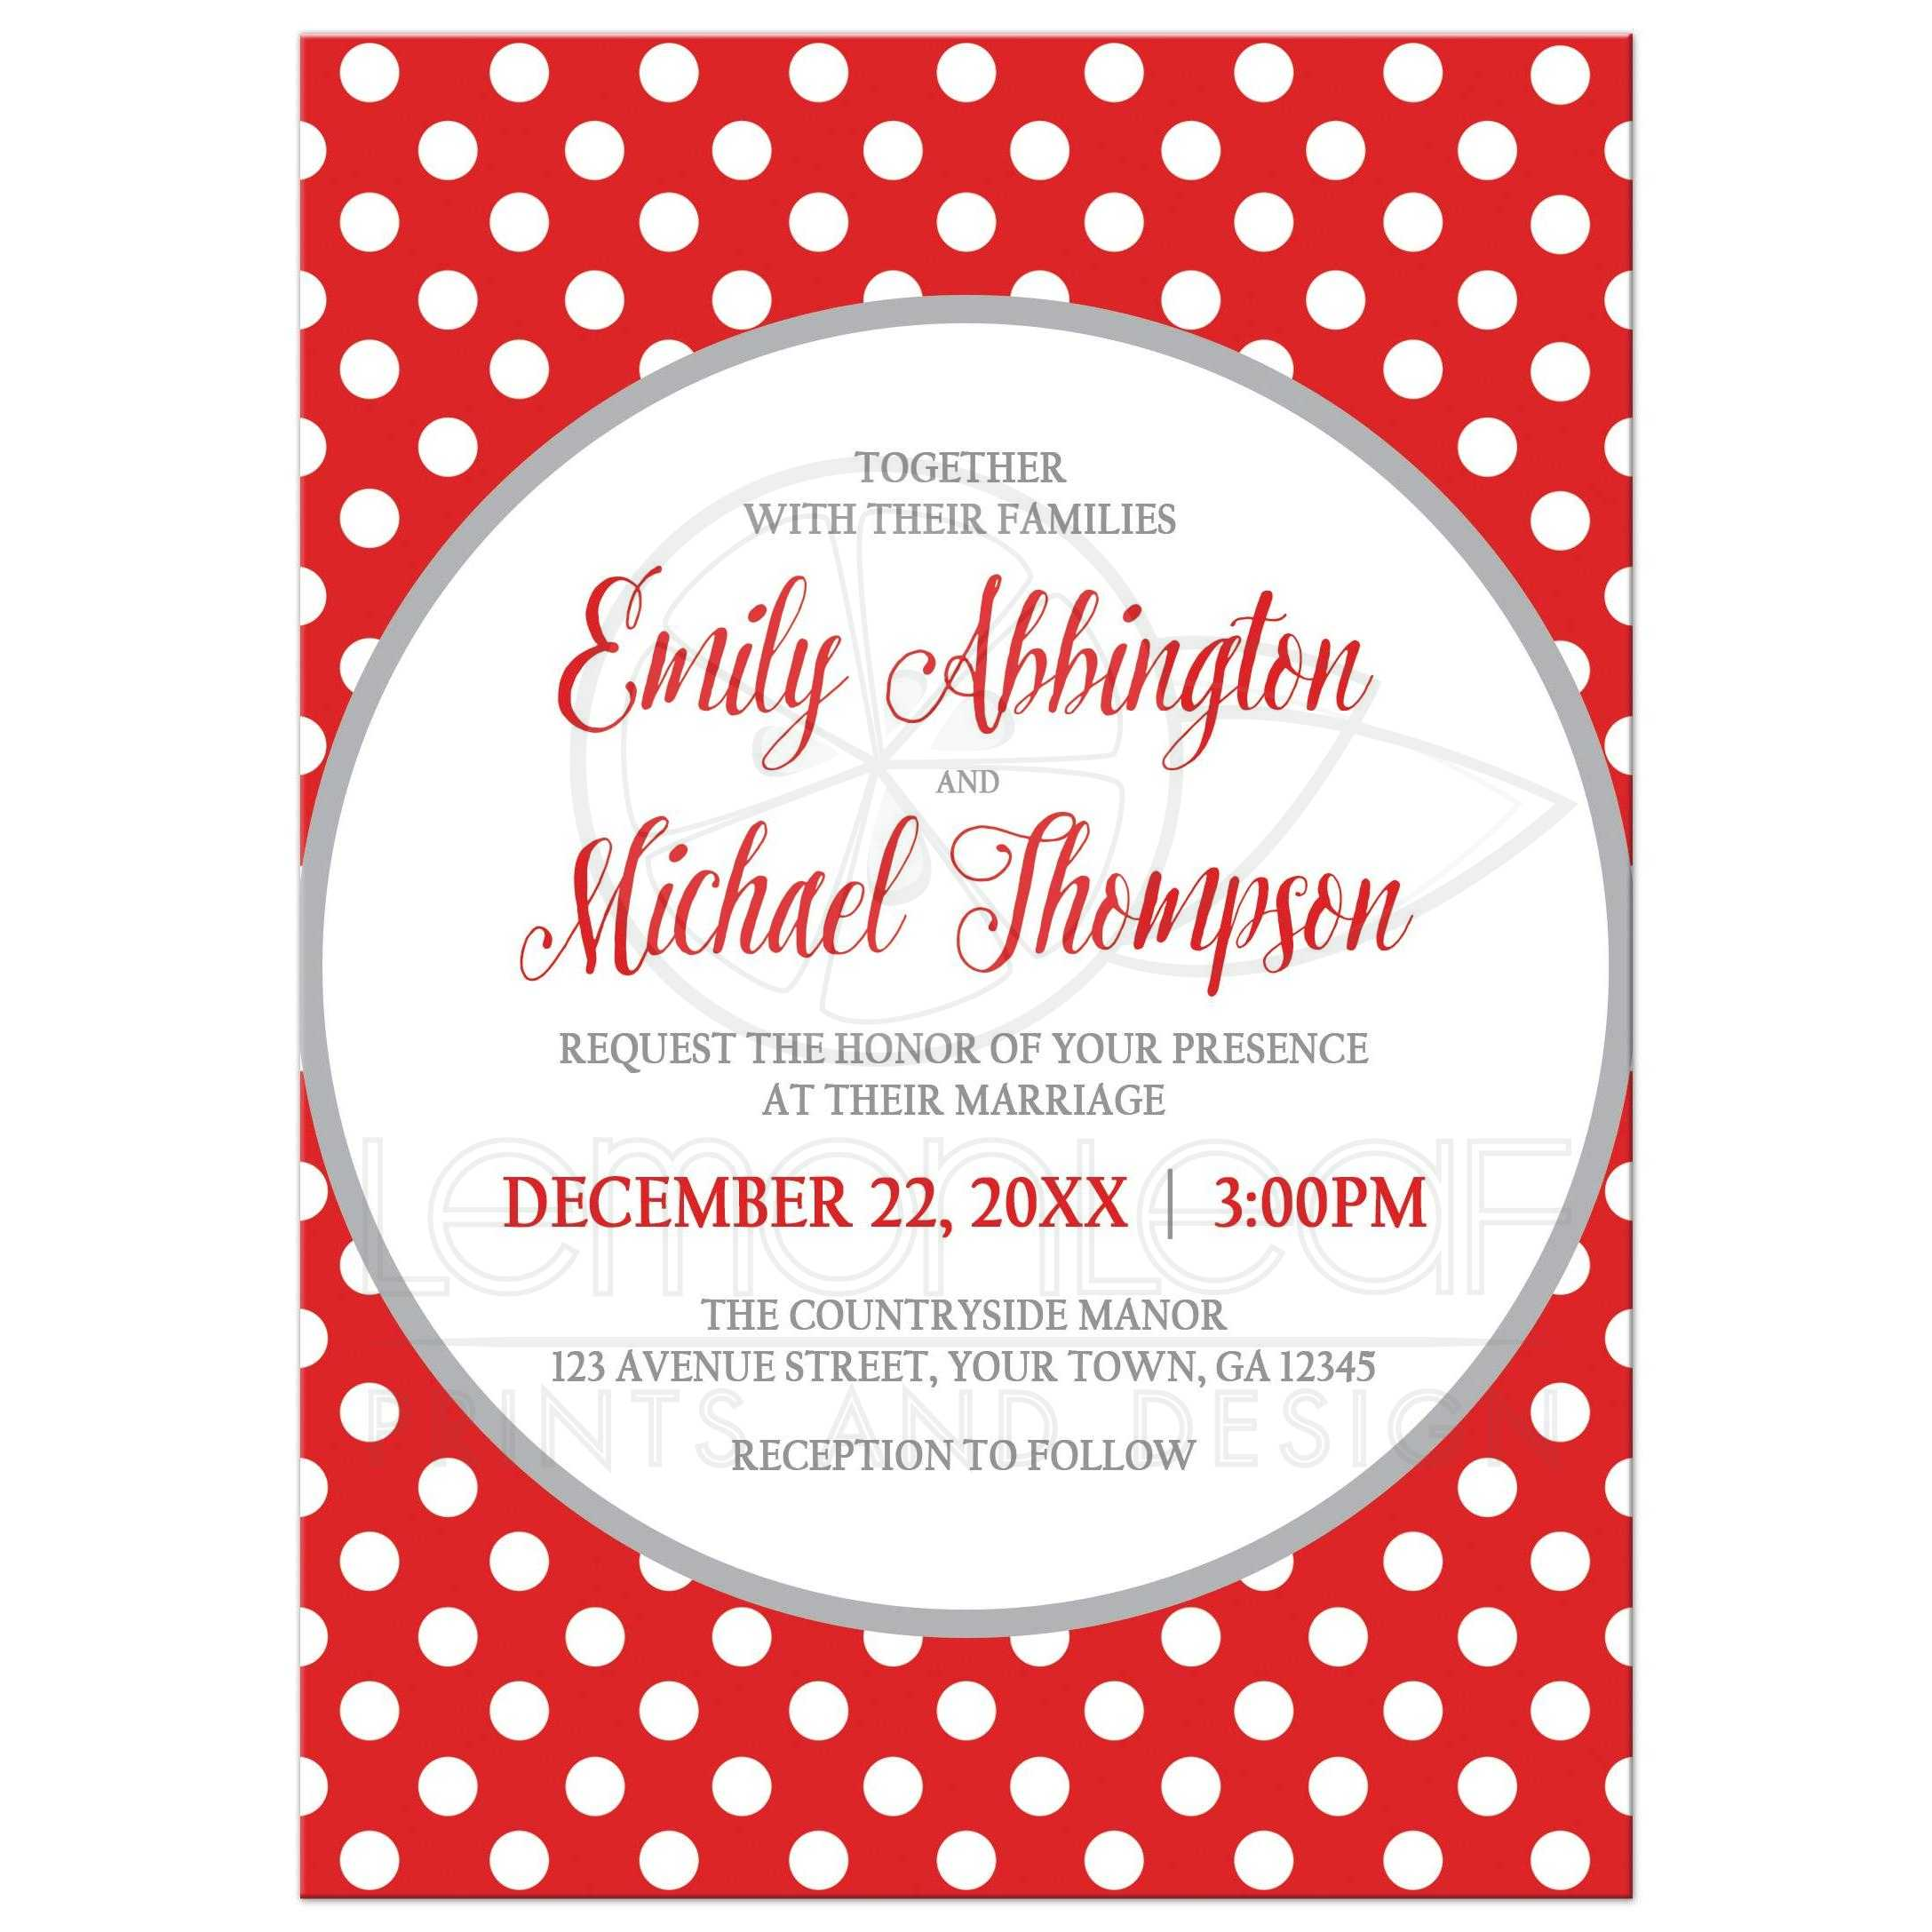 Wedding Invitations - Gray and Red Polka Dot